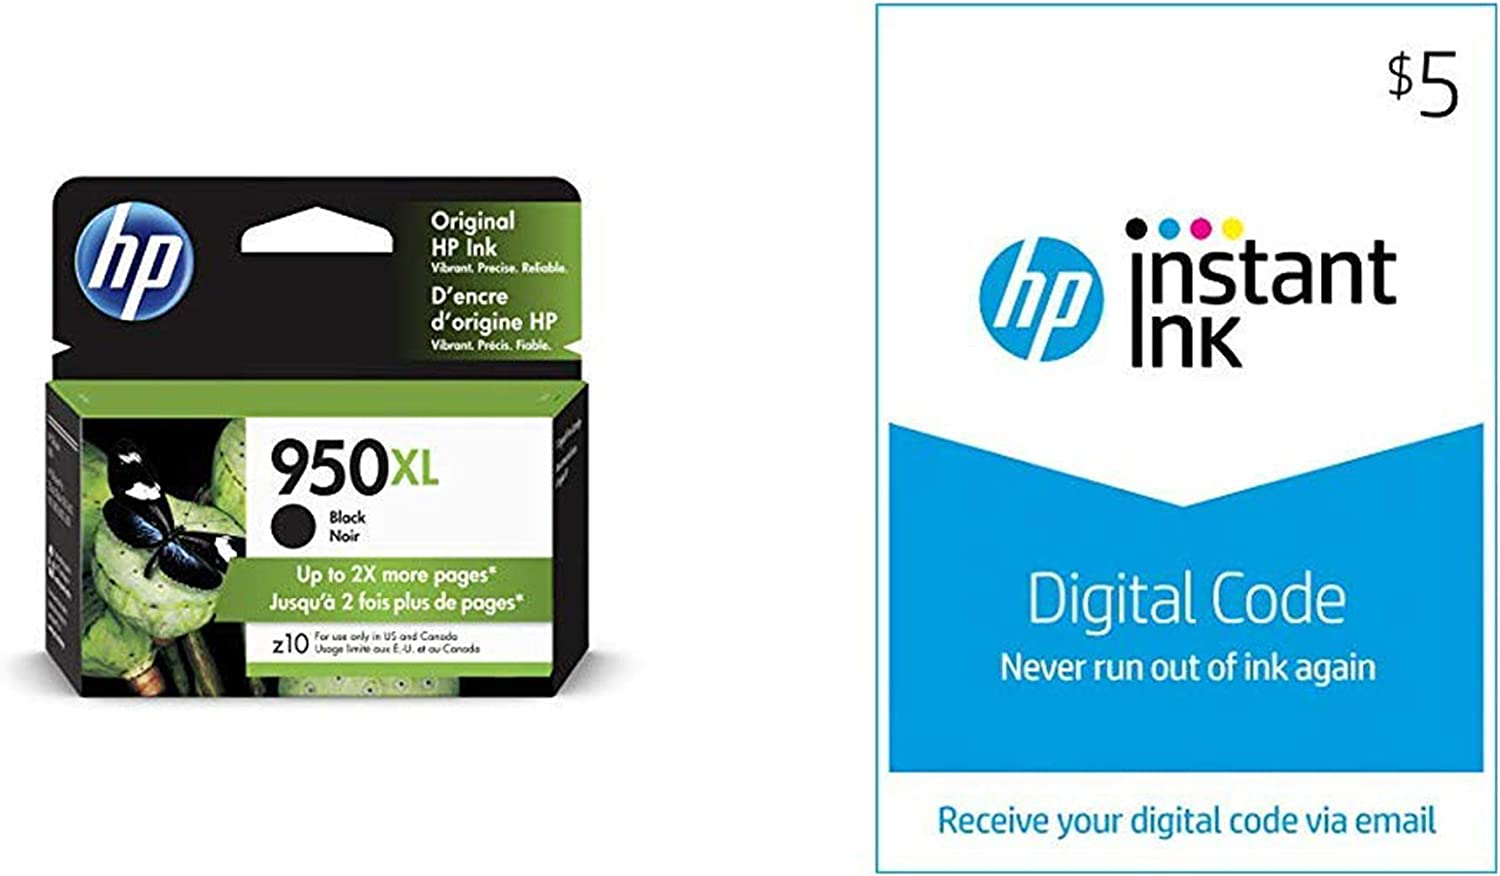 HP 950XL Ink | 1 Black Ink Cartridge | Plus $5 Instant Ink Prepaid Code